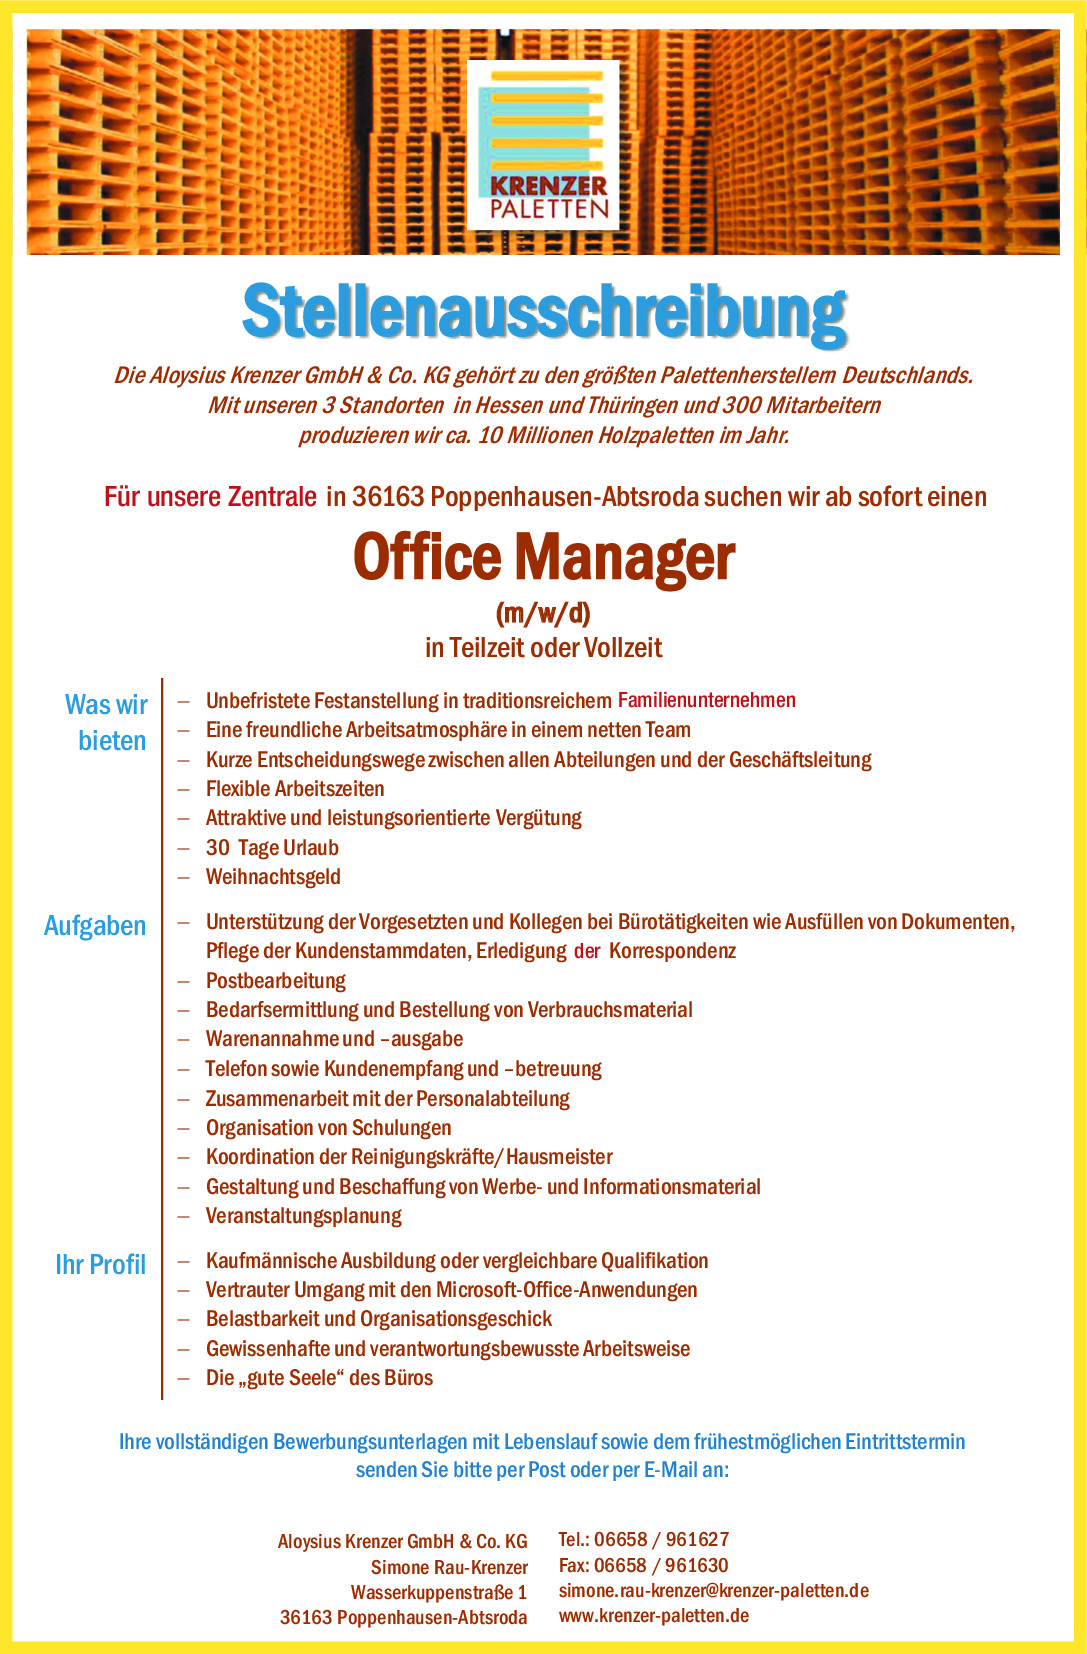 Office Manager (m/w/d)